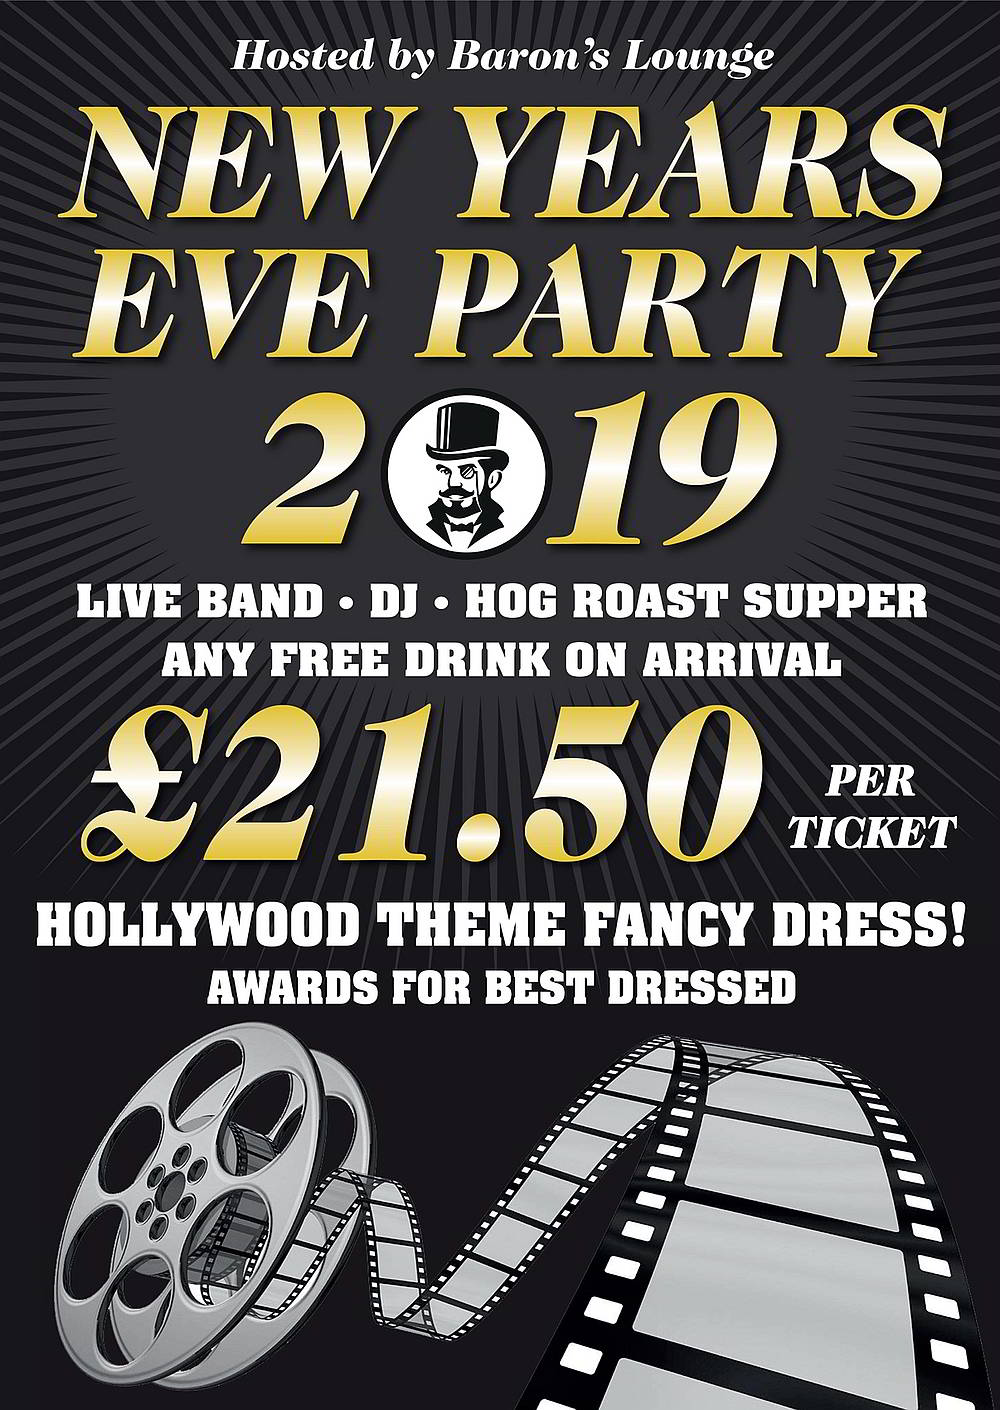 NewYear's Eve at Baron's Lounge